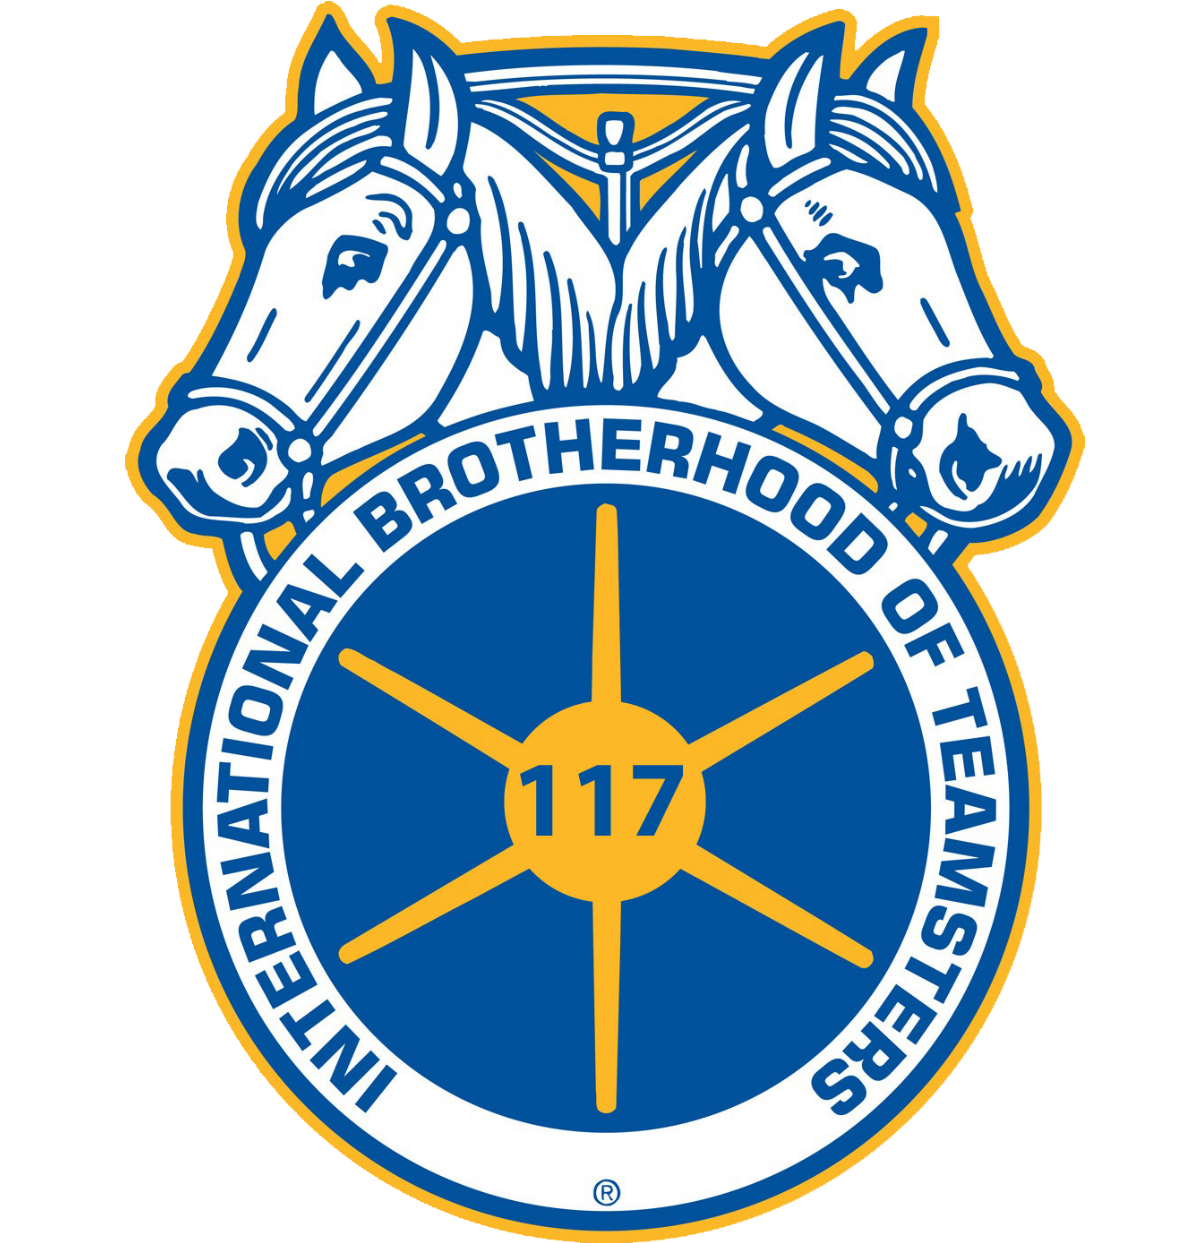 teamsters117logo.png